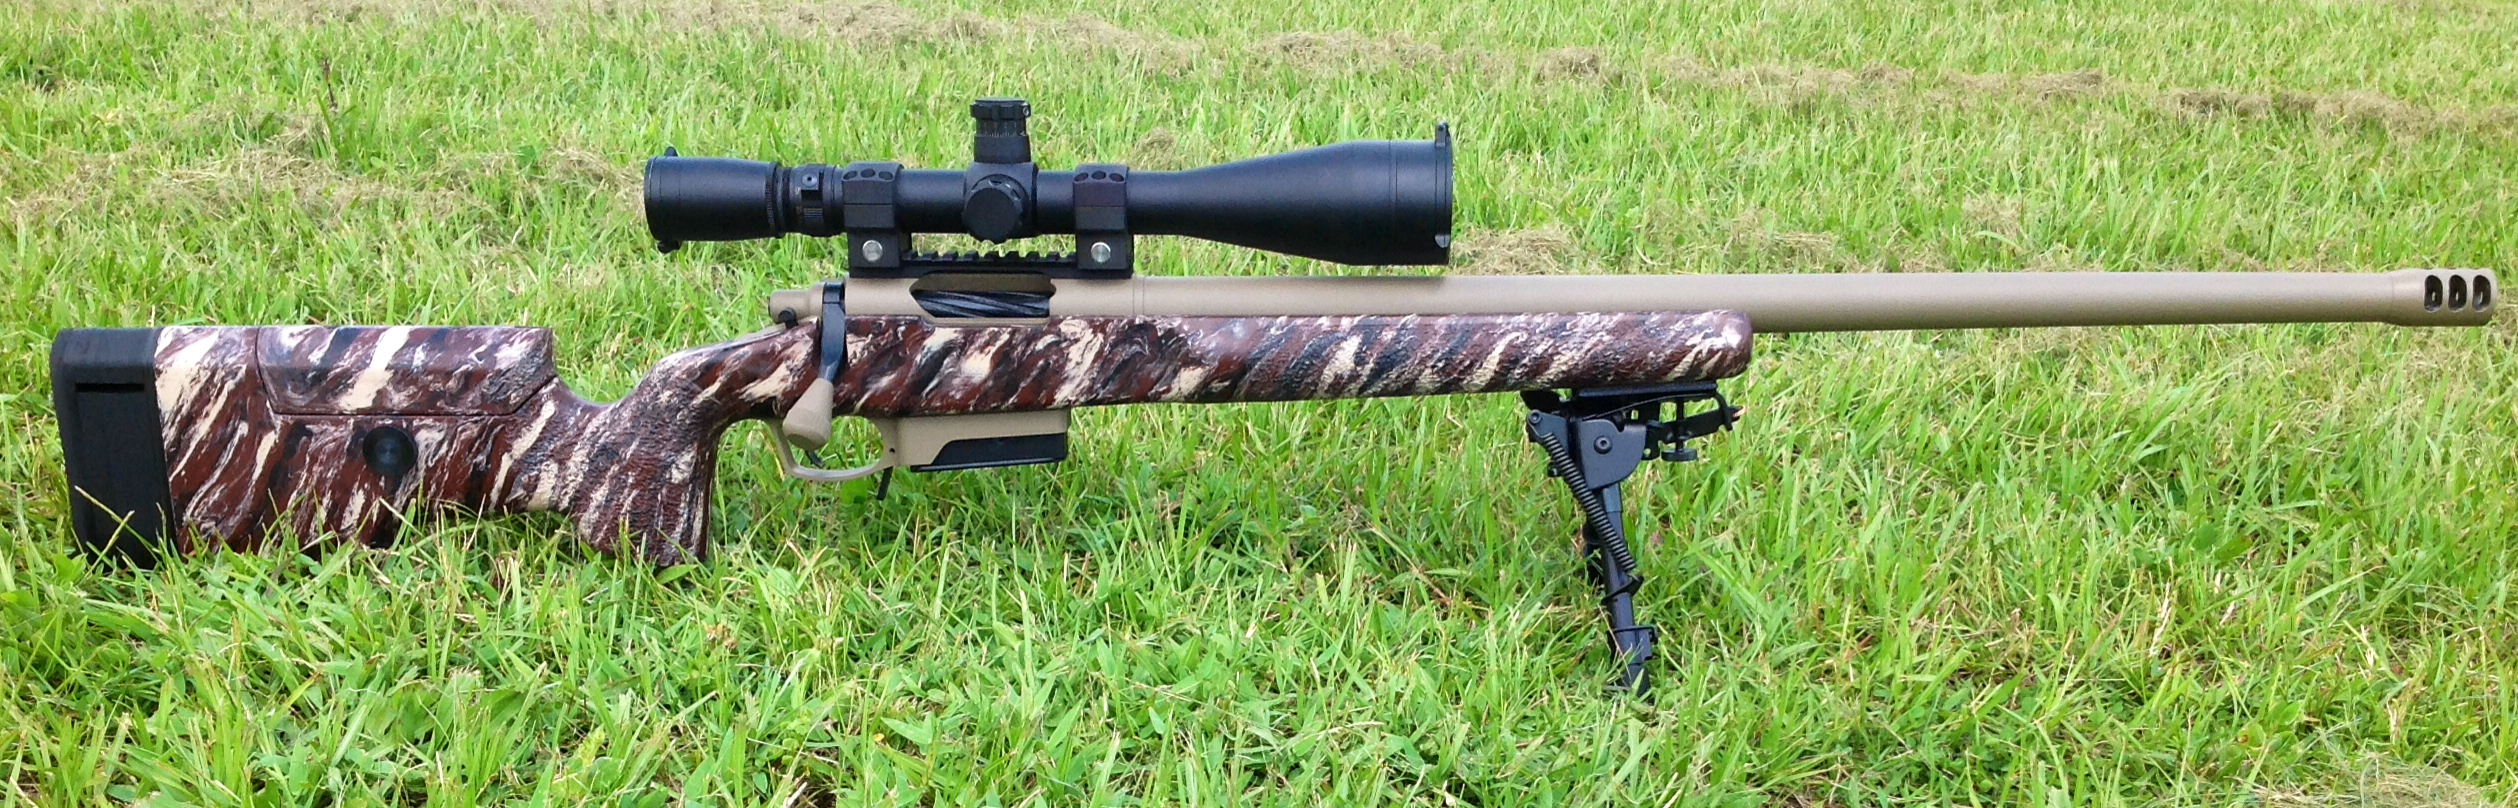 M40A5 marbled